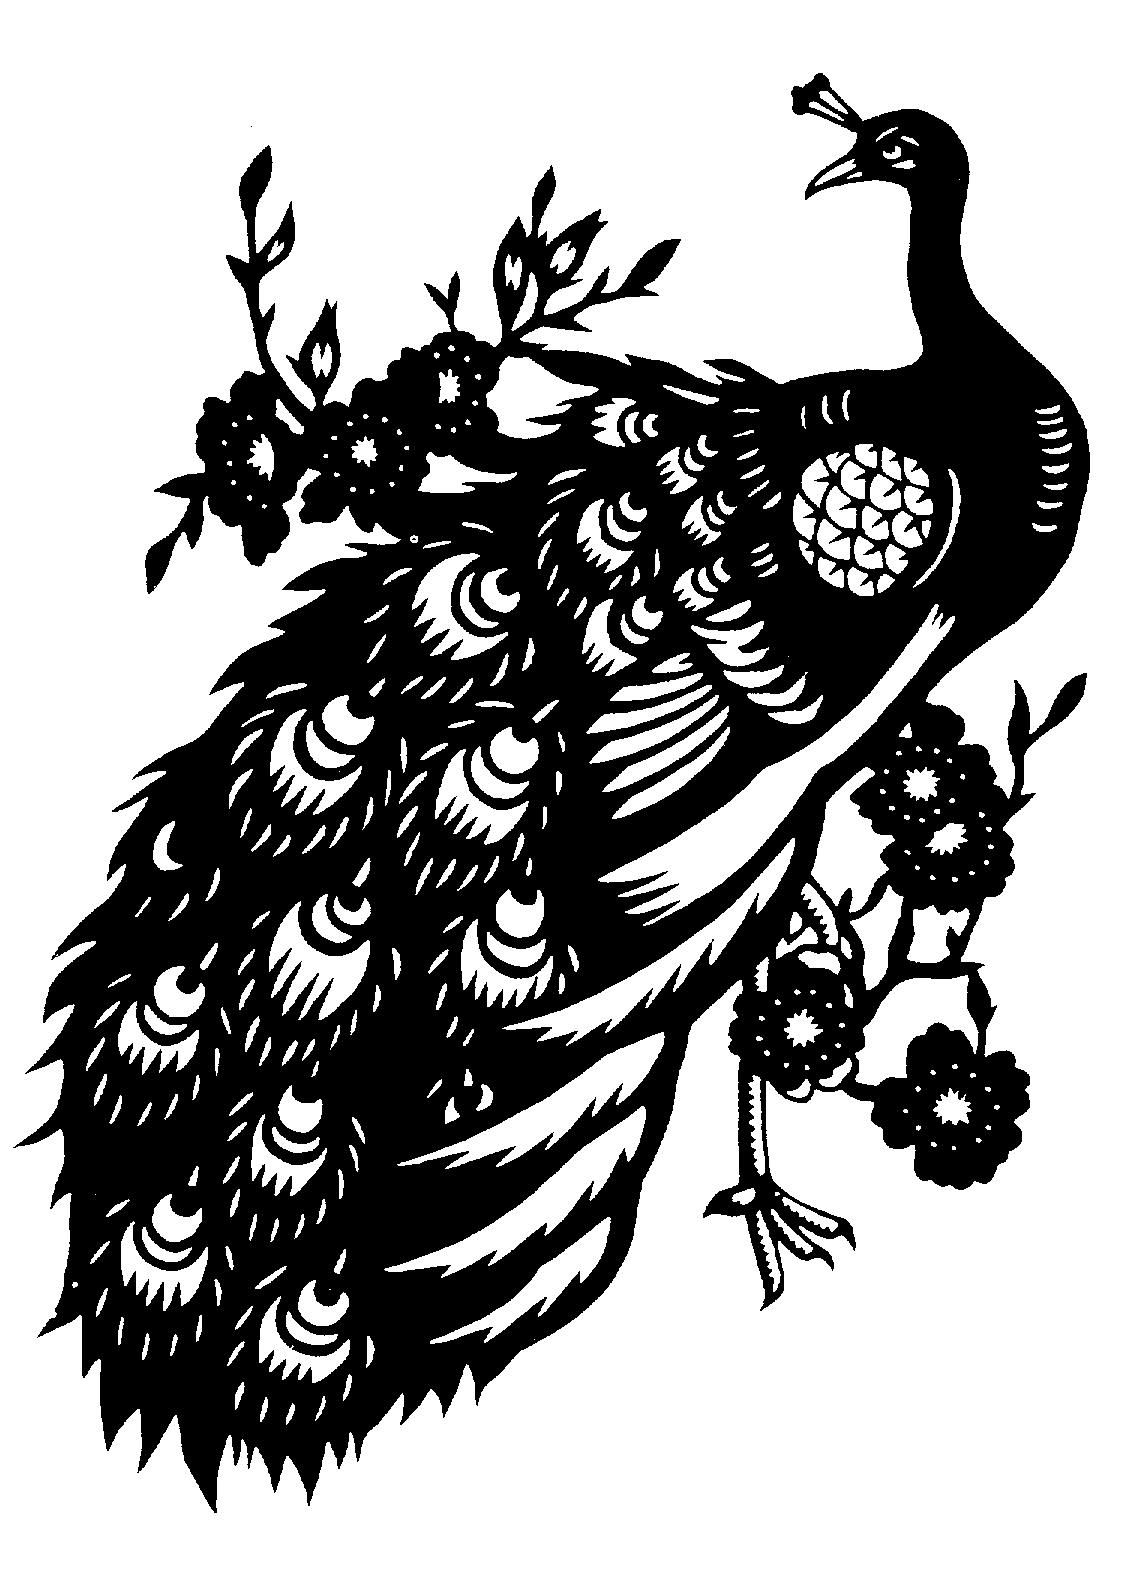 Paper Cutting Designs | traditional chinese papercutting designs ...